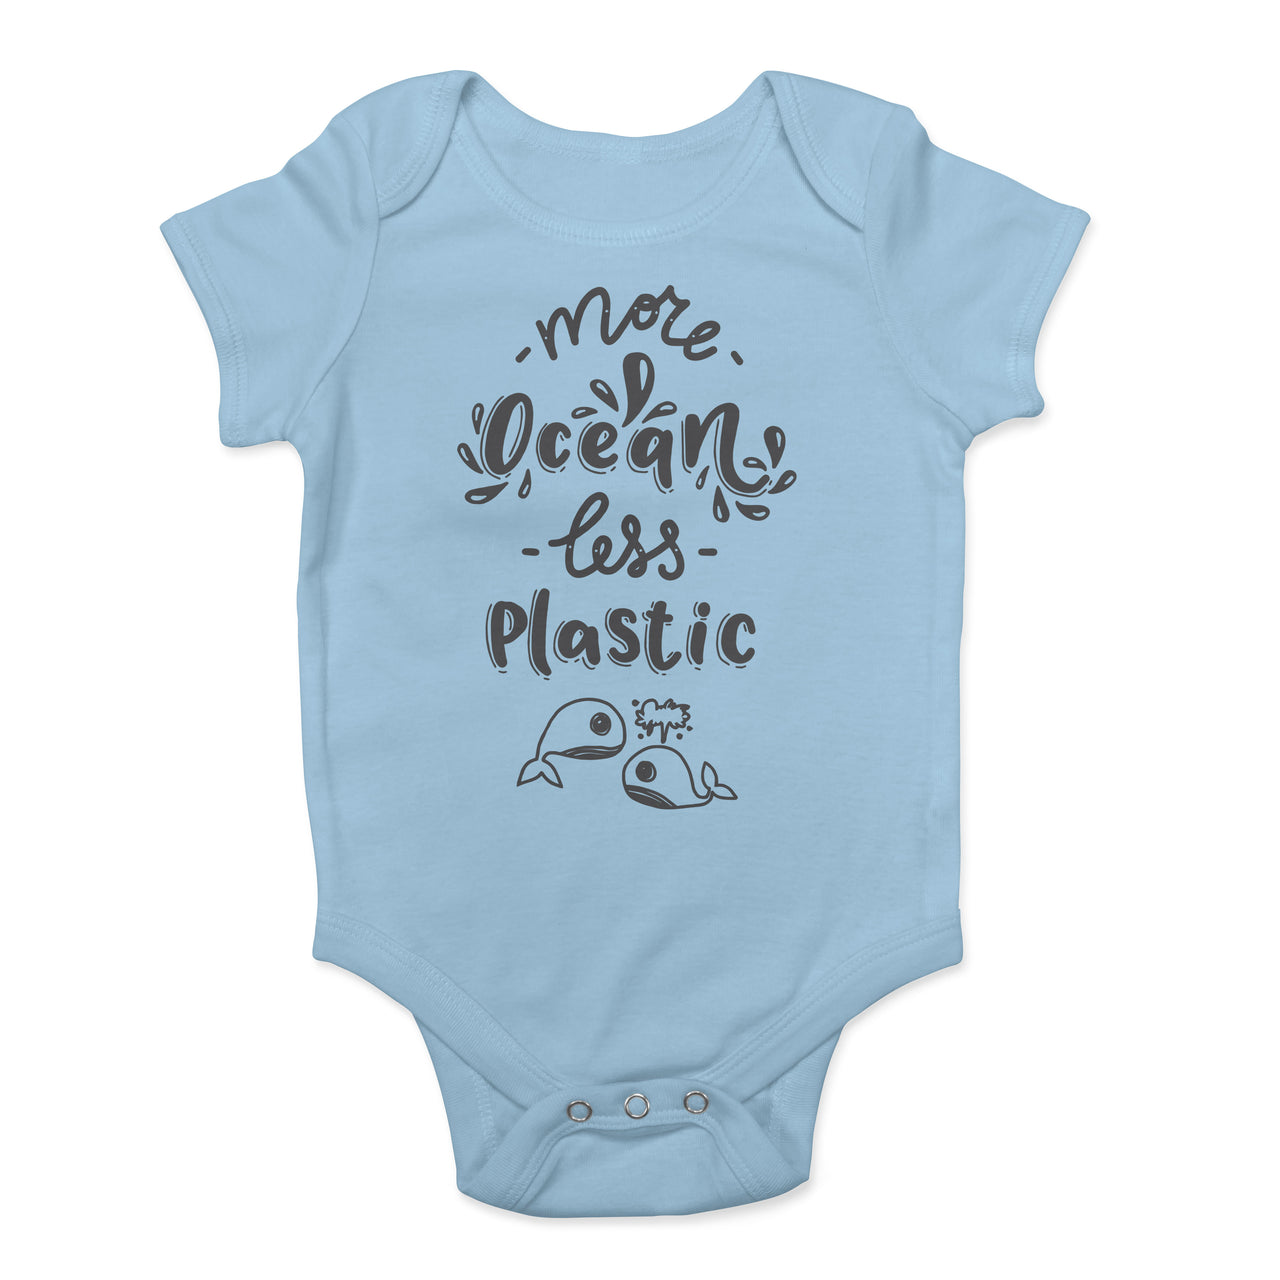 More Ocean Less Plastic Environment Save Our Seas Skip Straws Organic Cotton Recycled Onesie Babies Baby